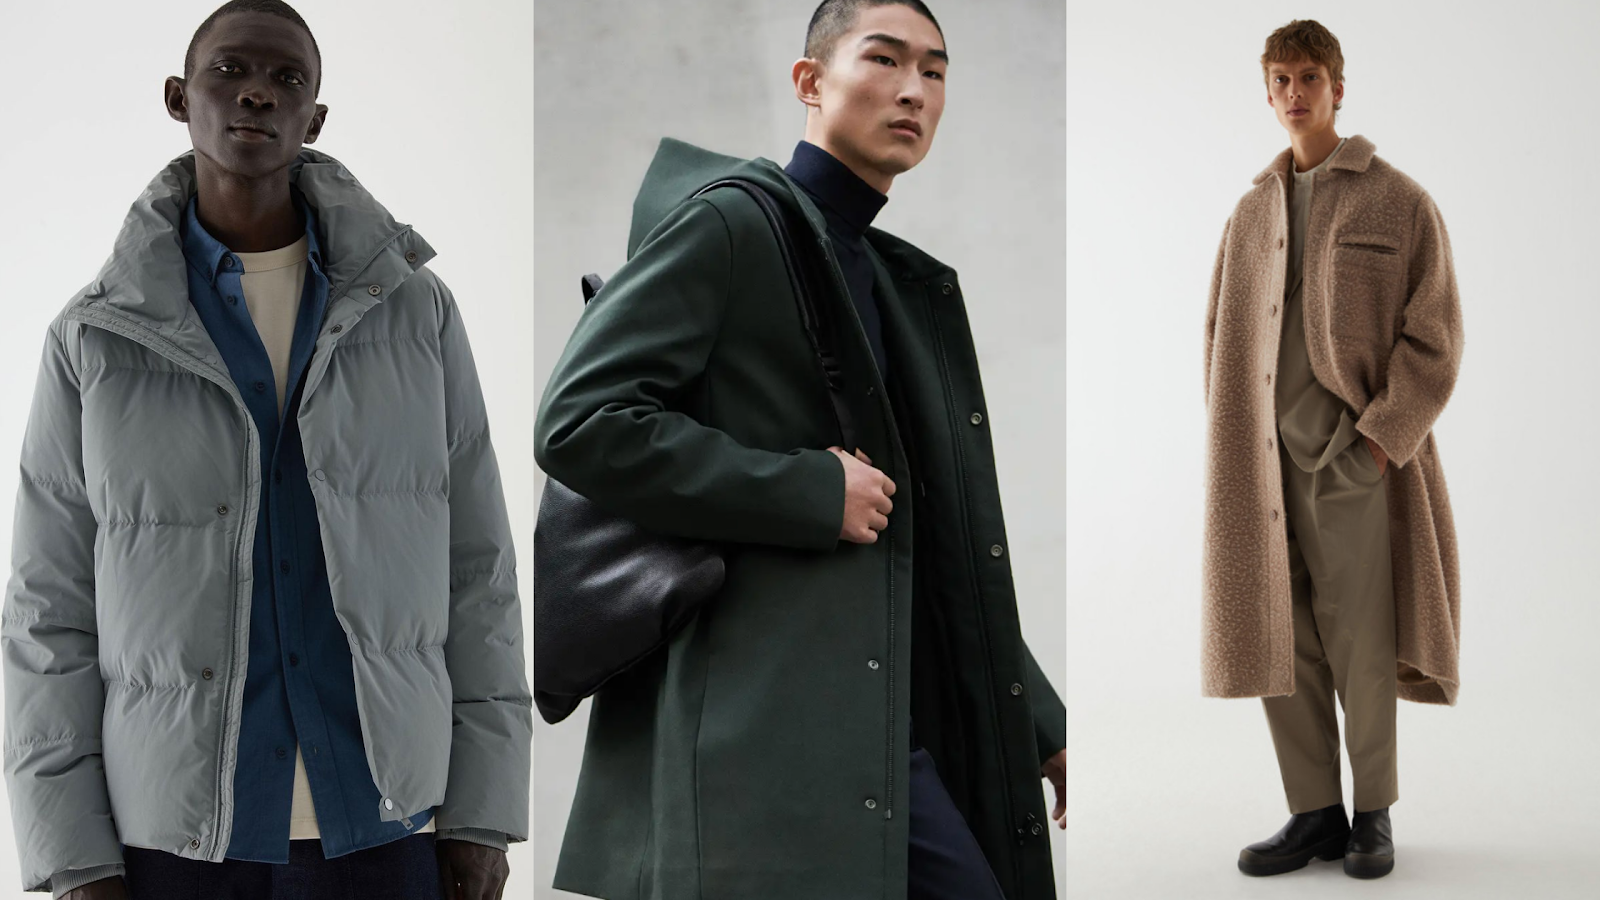 Shop men's winter outfits from COS